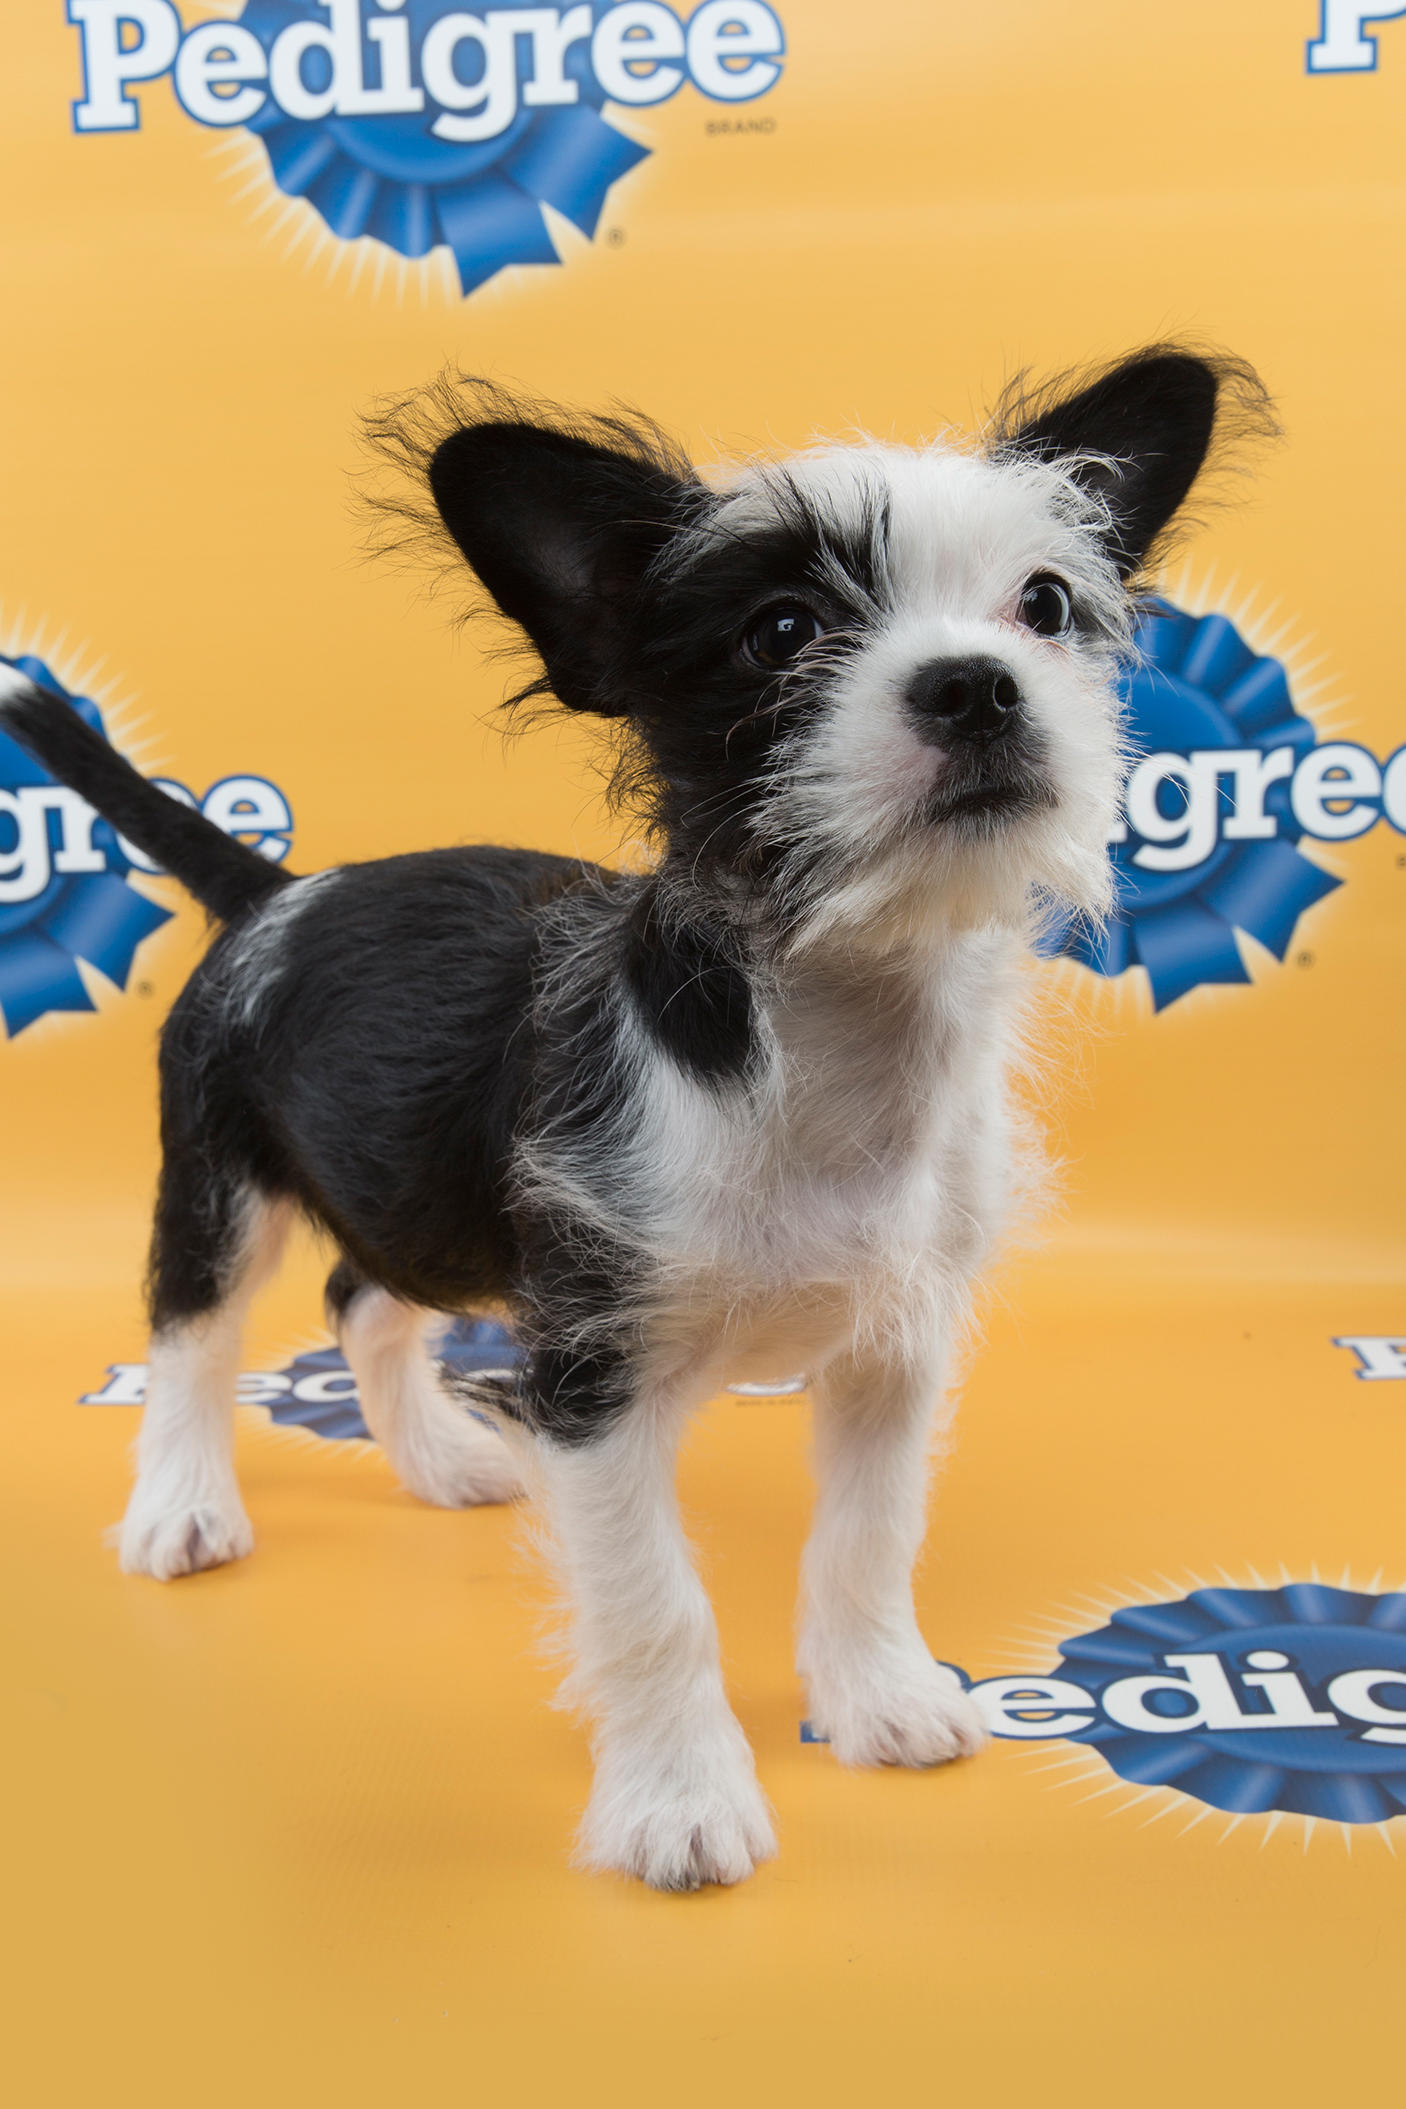 Papper Puppy Bowl 11, puppy bowl xi, puppy bowl, starting lineup, lineup, puppy, puppies